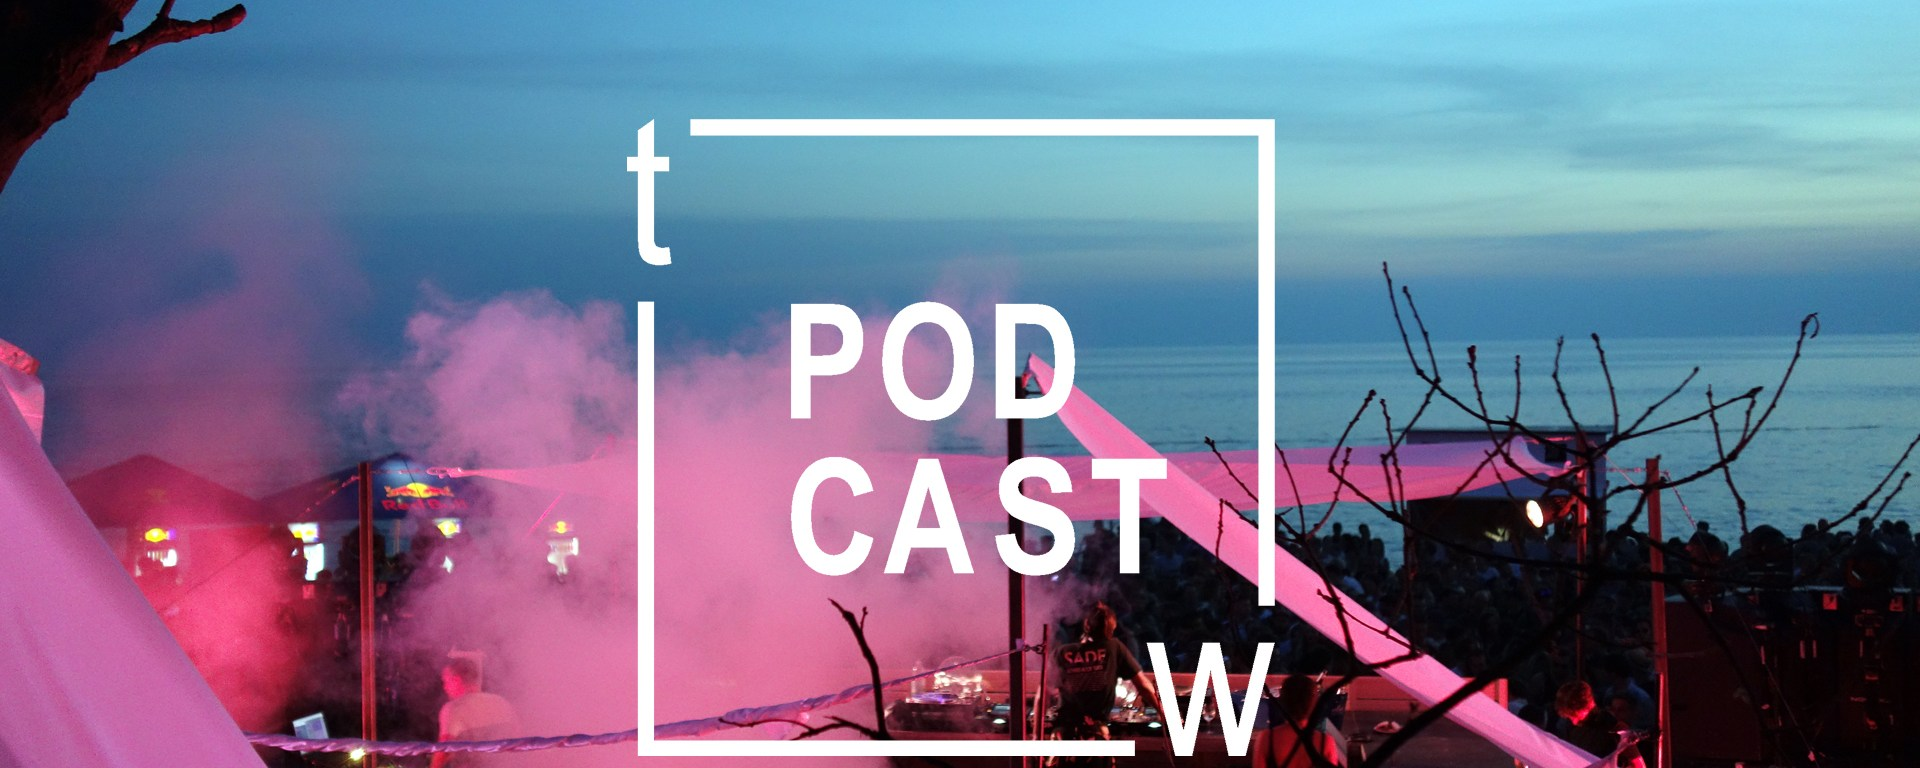 10-most-promising-Festival-DJs-2019_podcast_tunes&wings